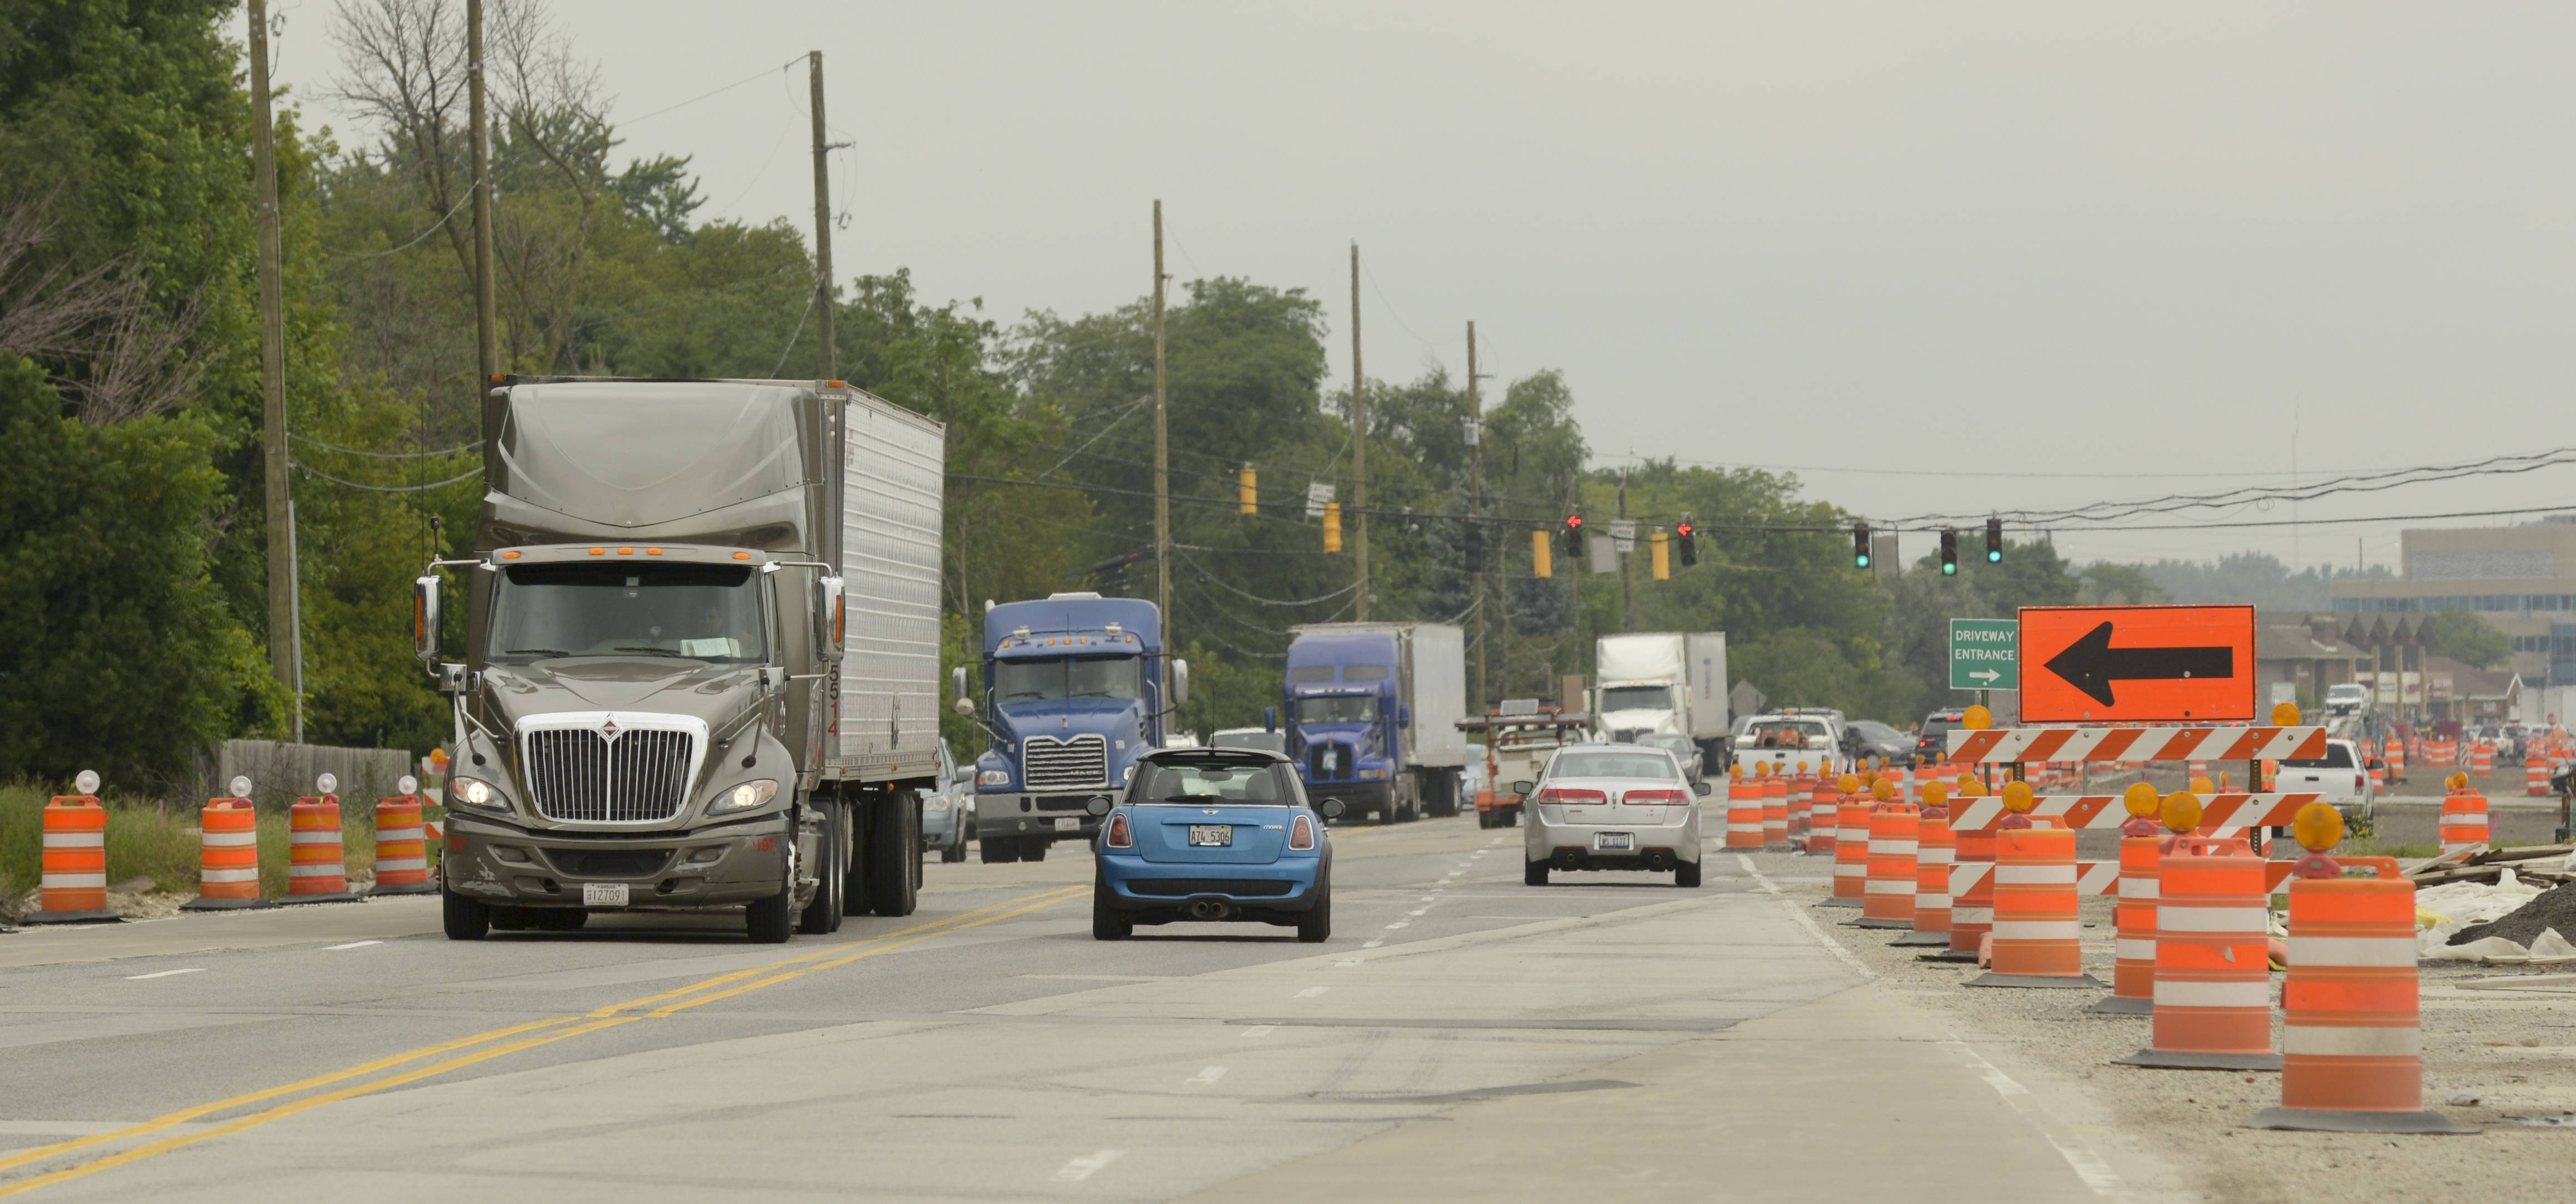 It's been almost a year since construction began on widening a three-mile stretch of Route 59 in Naperville and Aurora. The project is expected to take two years and cost nearly $90 million.